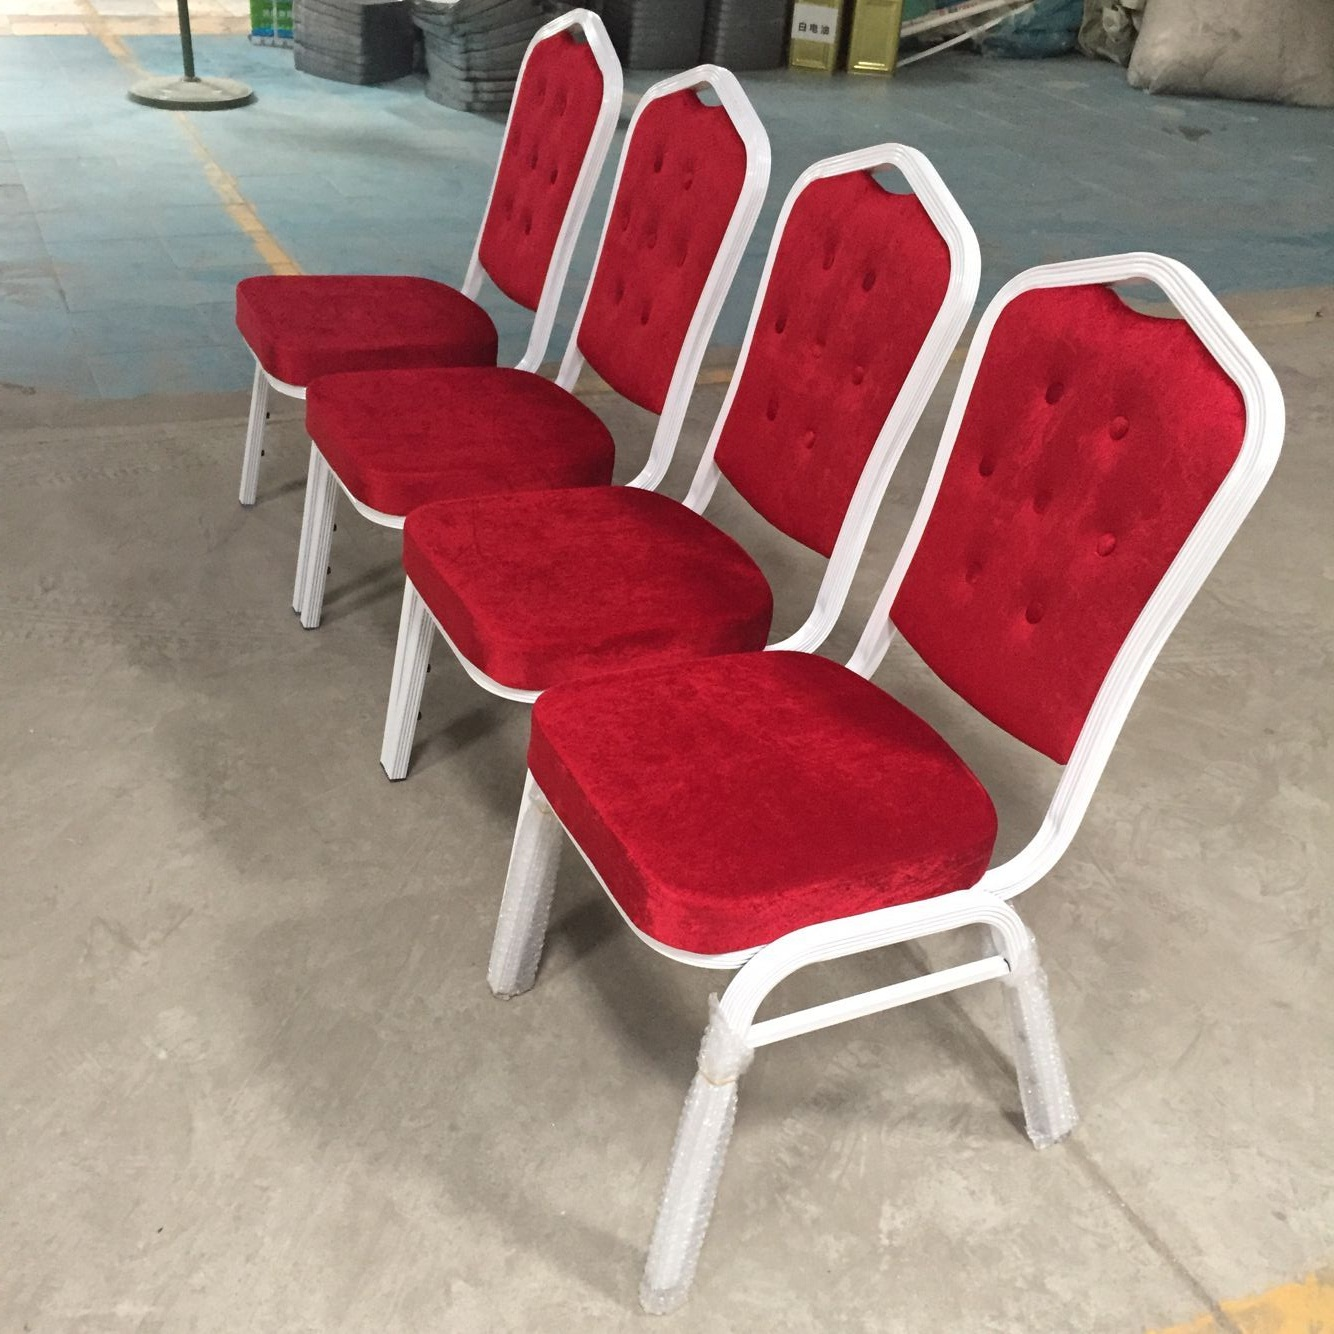 Factory Price Discount Stackable Chairs -